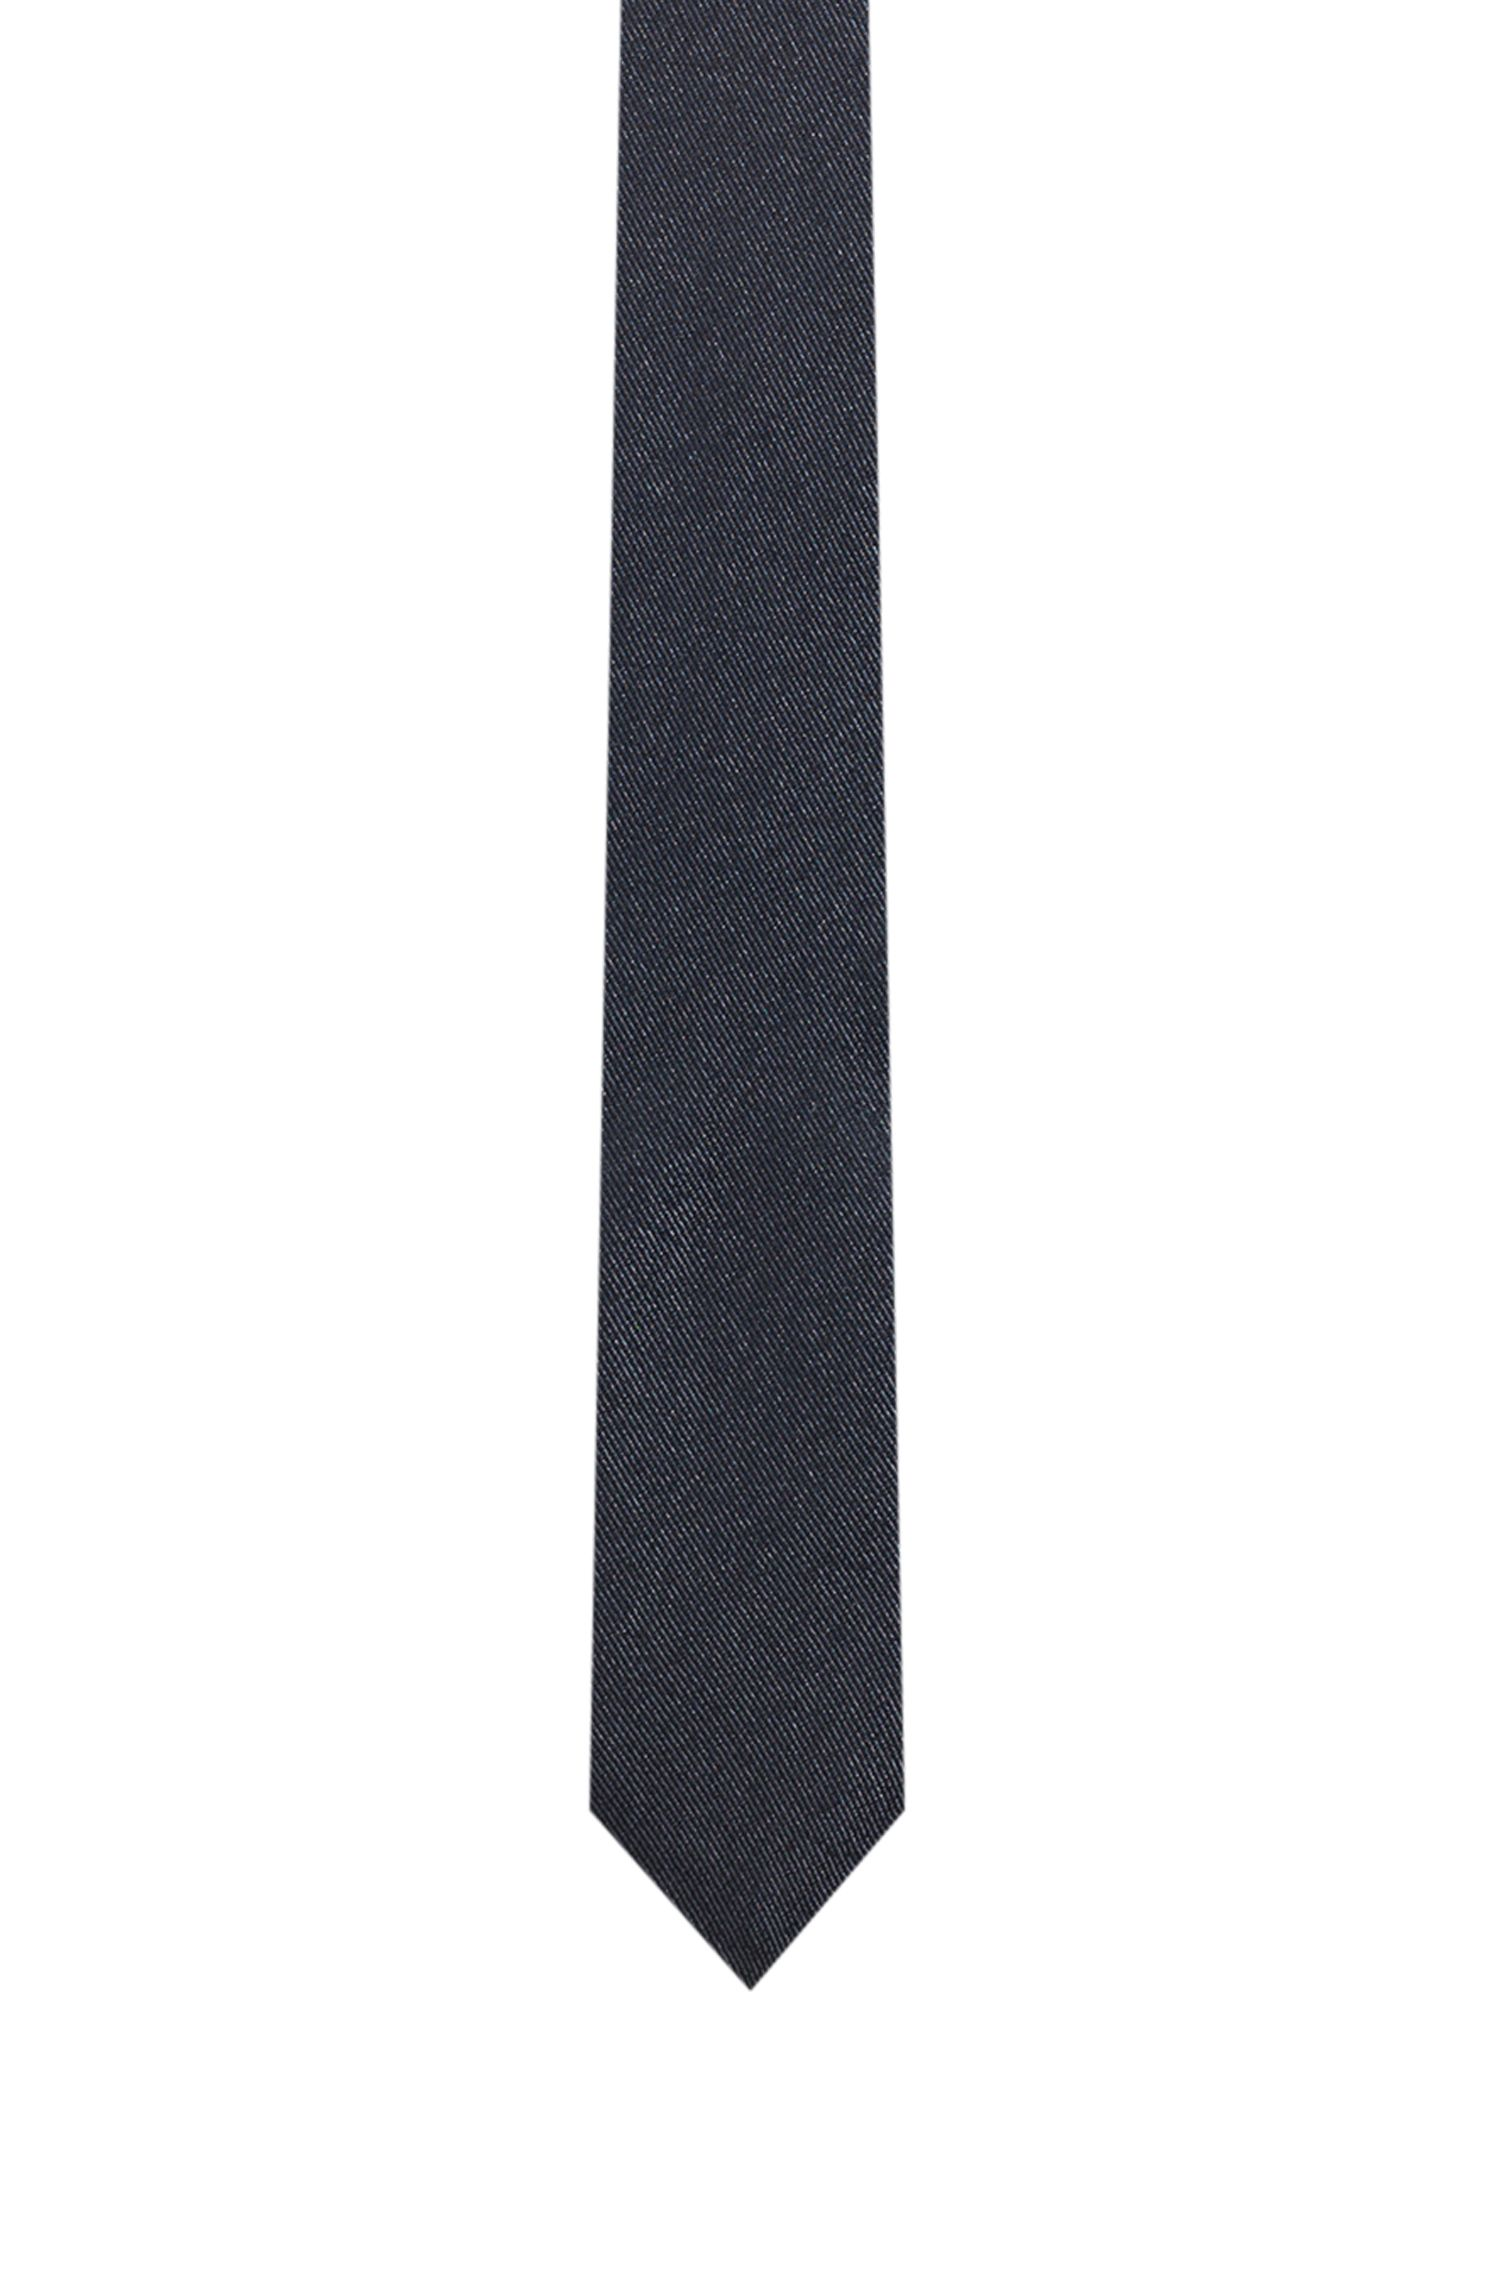 Silk-blend tie with QR-code motif, Black